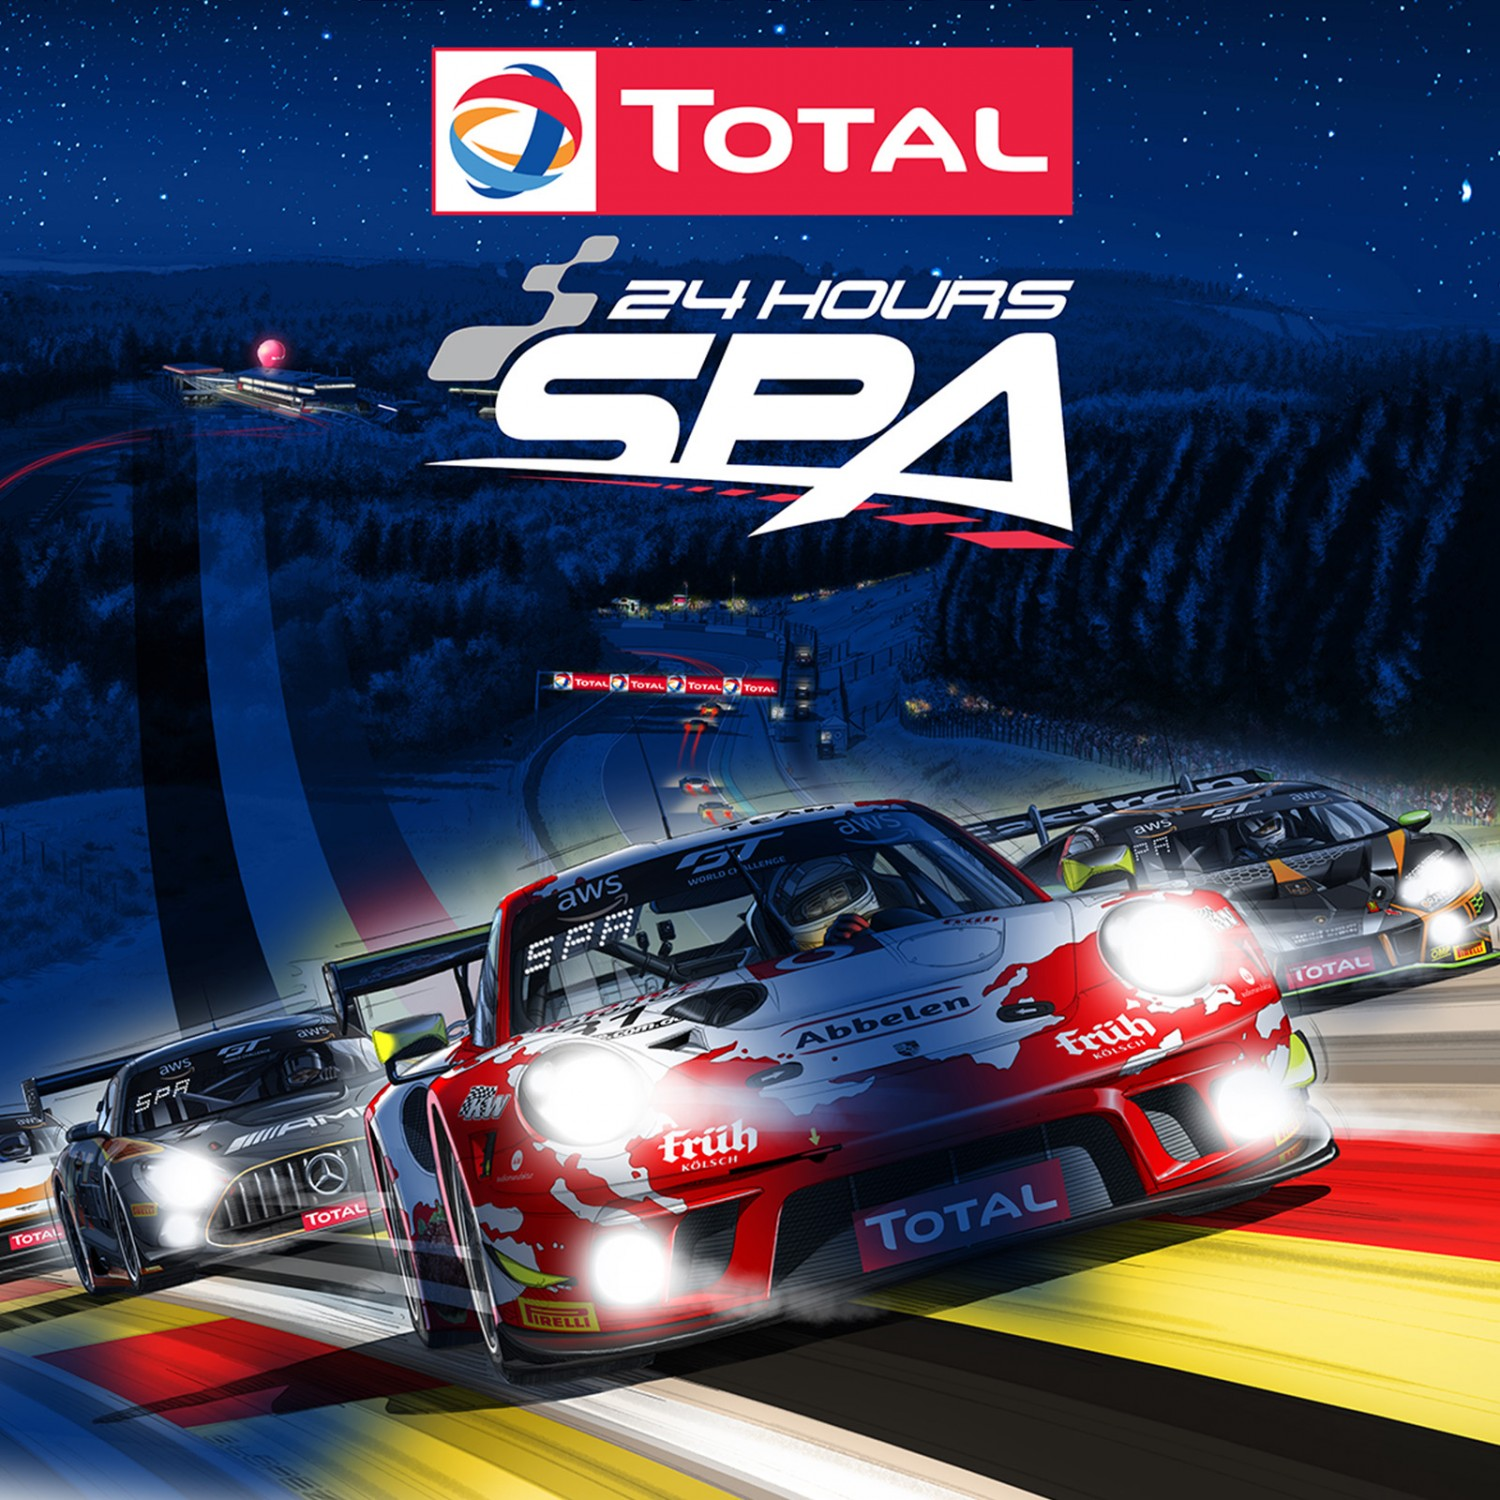 Total 24 Hours of Spa marks 100-day countdown with dazzling night racing poster